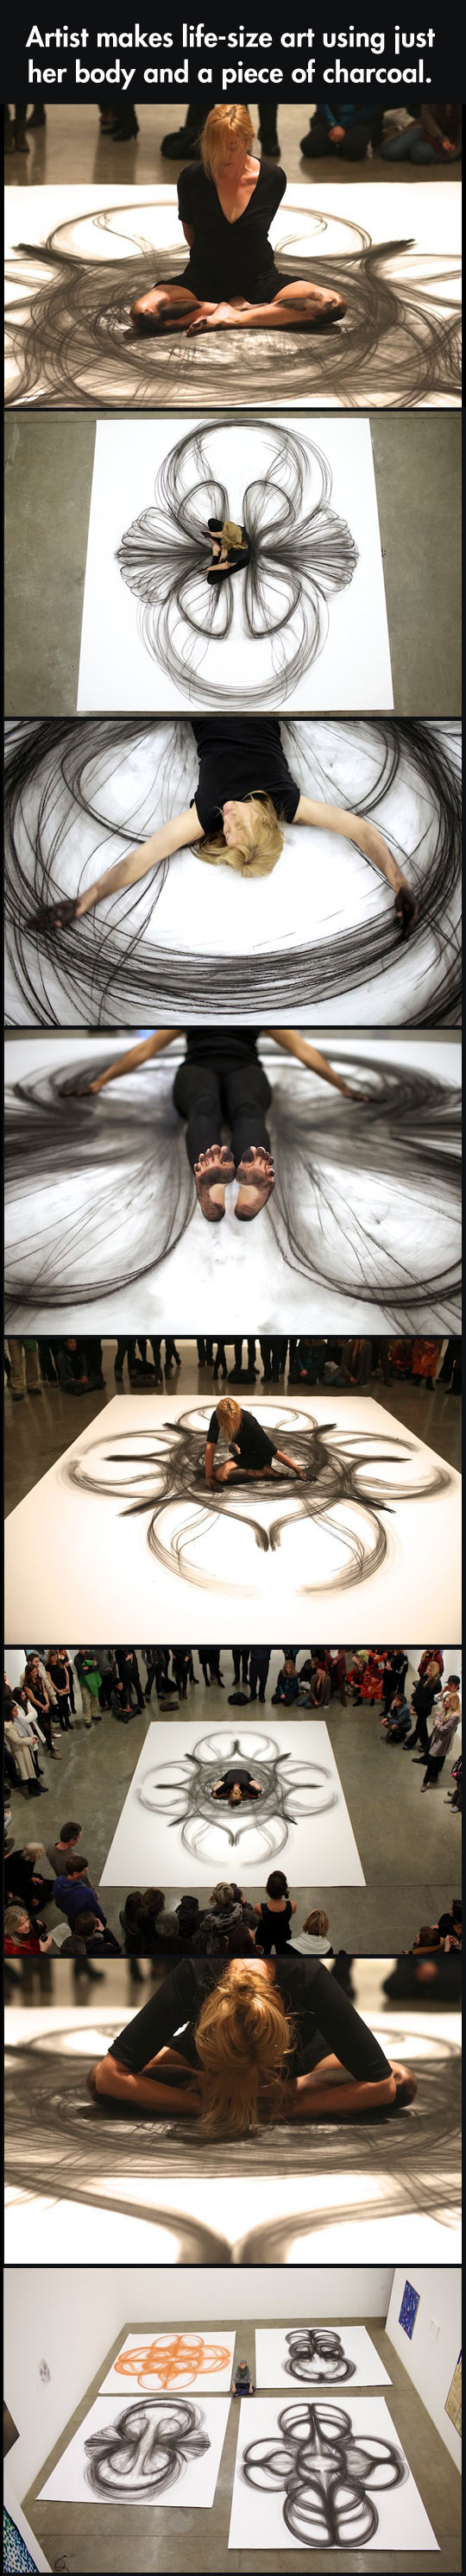 funny-woman-artist-performance-drawing